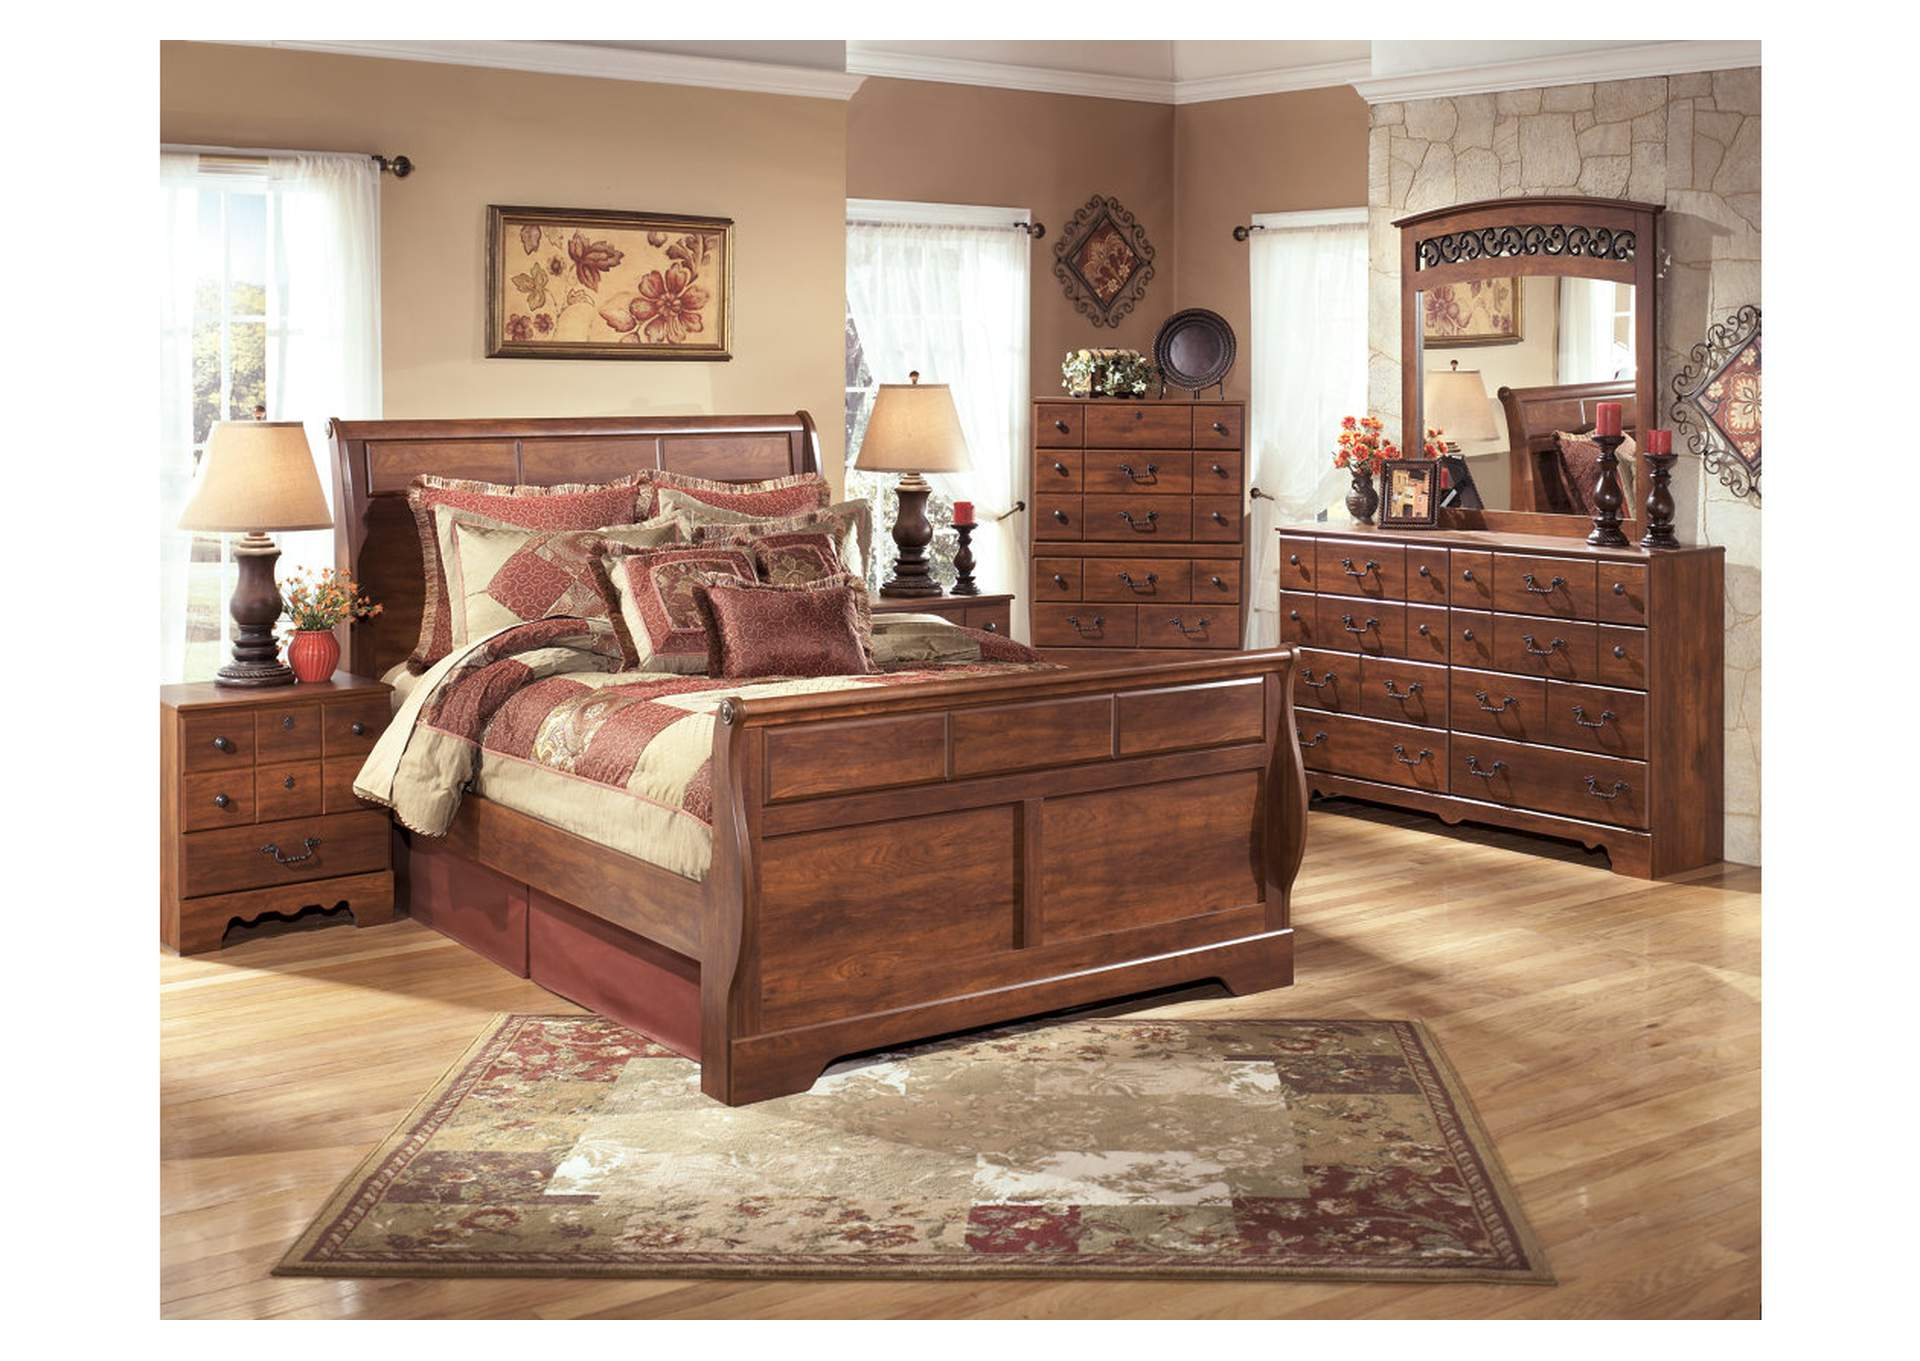 Timberline Queen Sleigh Bed w/Dresser, Mirror, Drawer Chest & Nightstand,Signature Design By Ashley